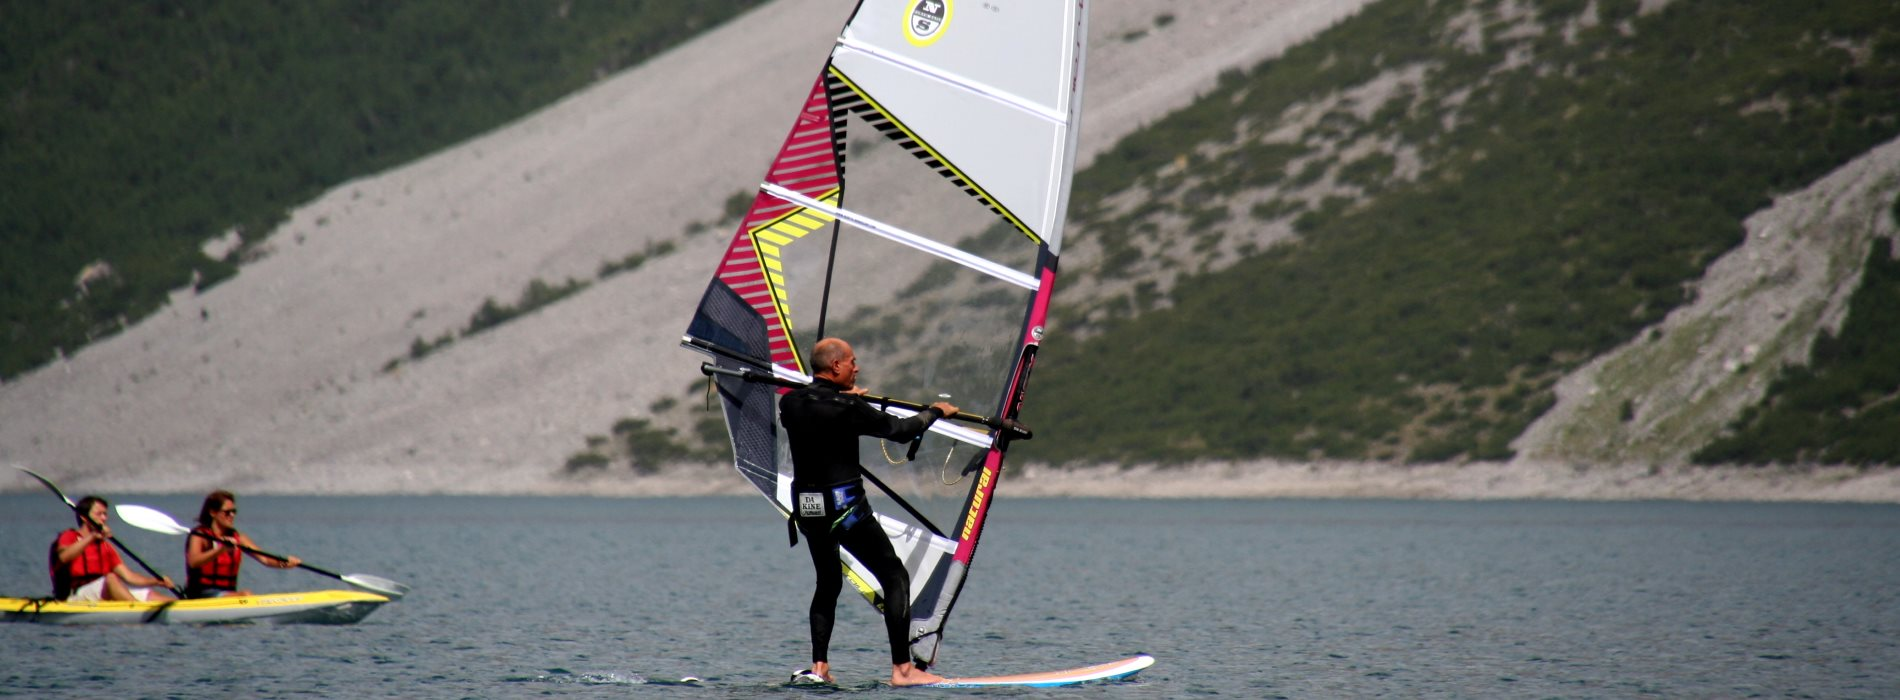 windsurf al lago del Gallo